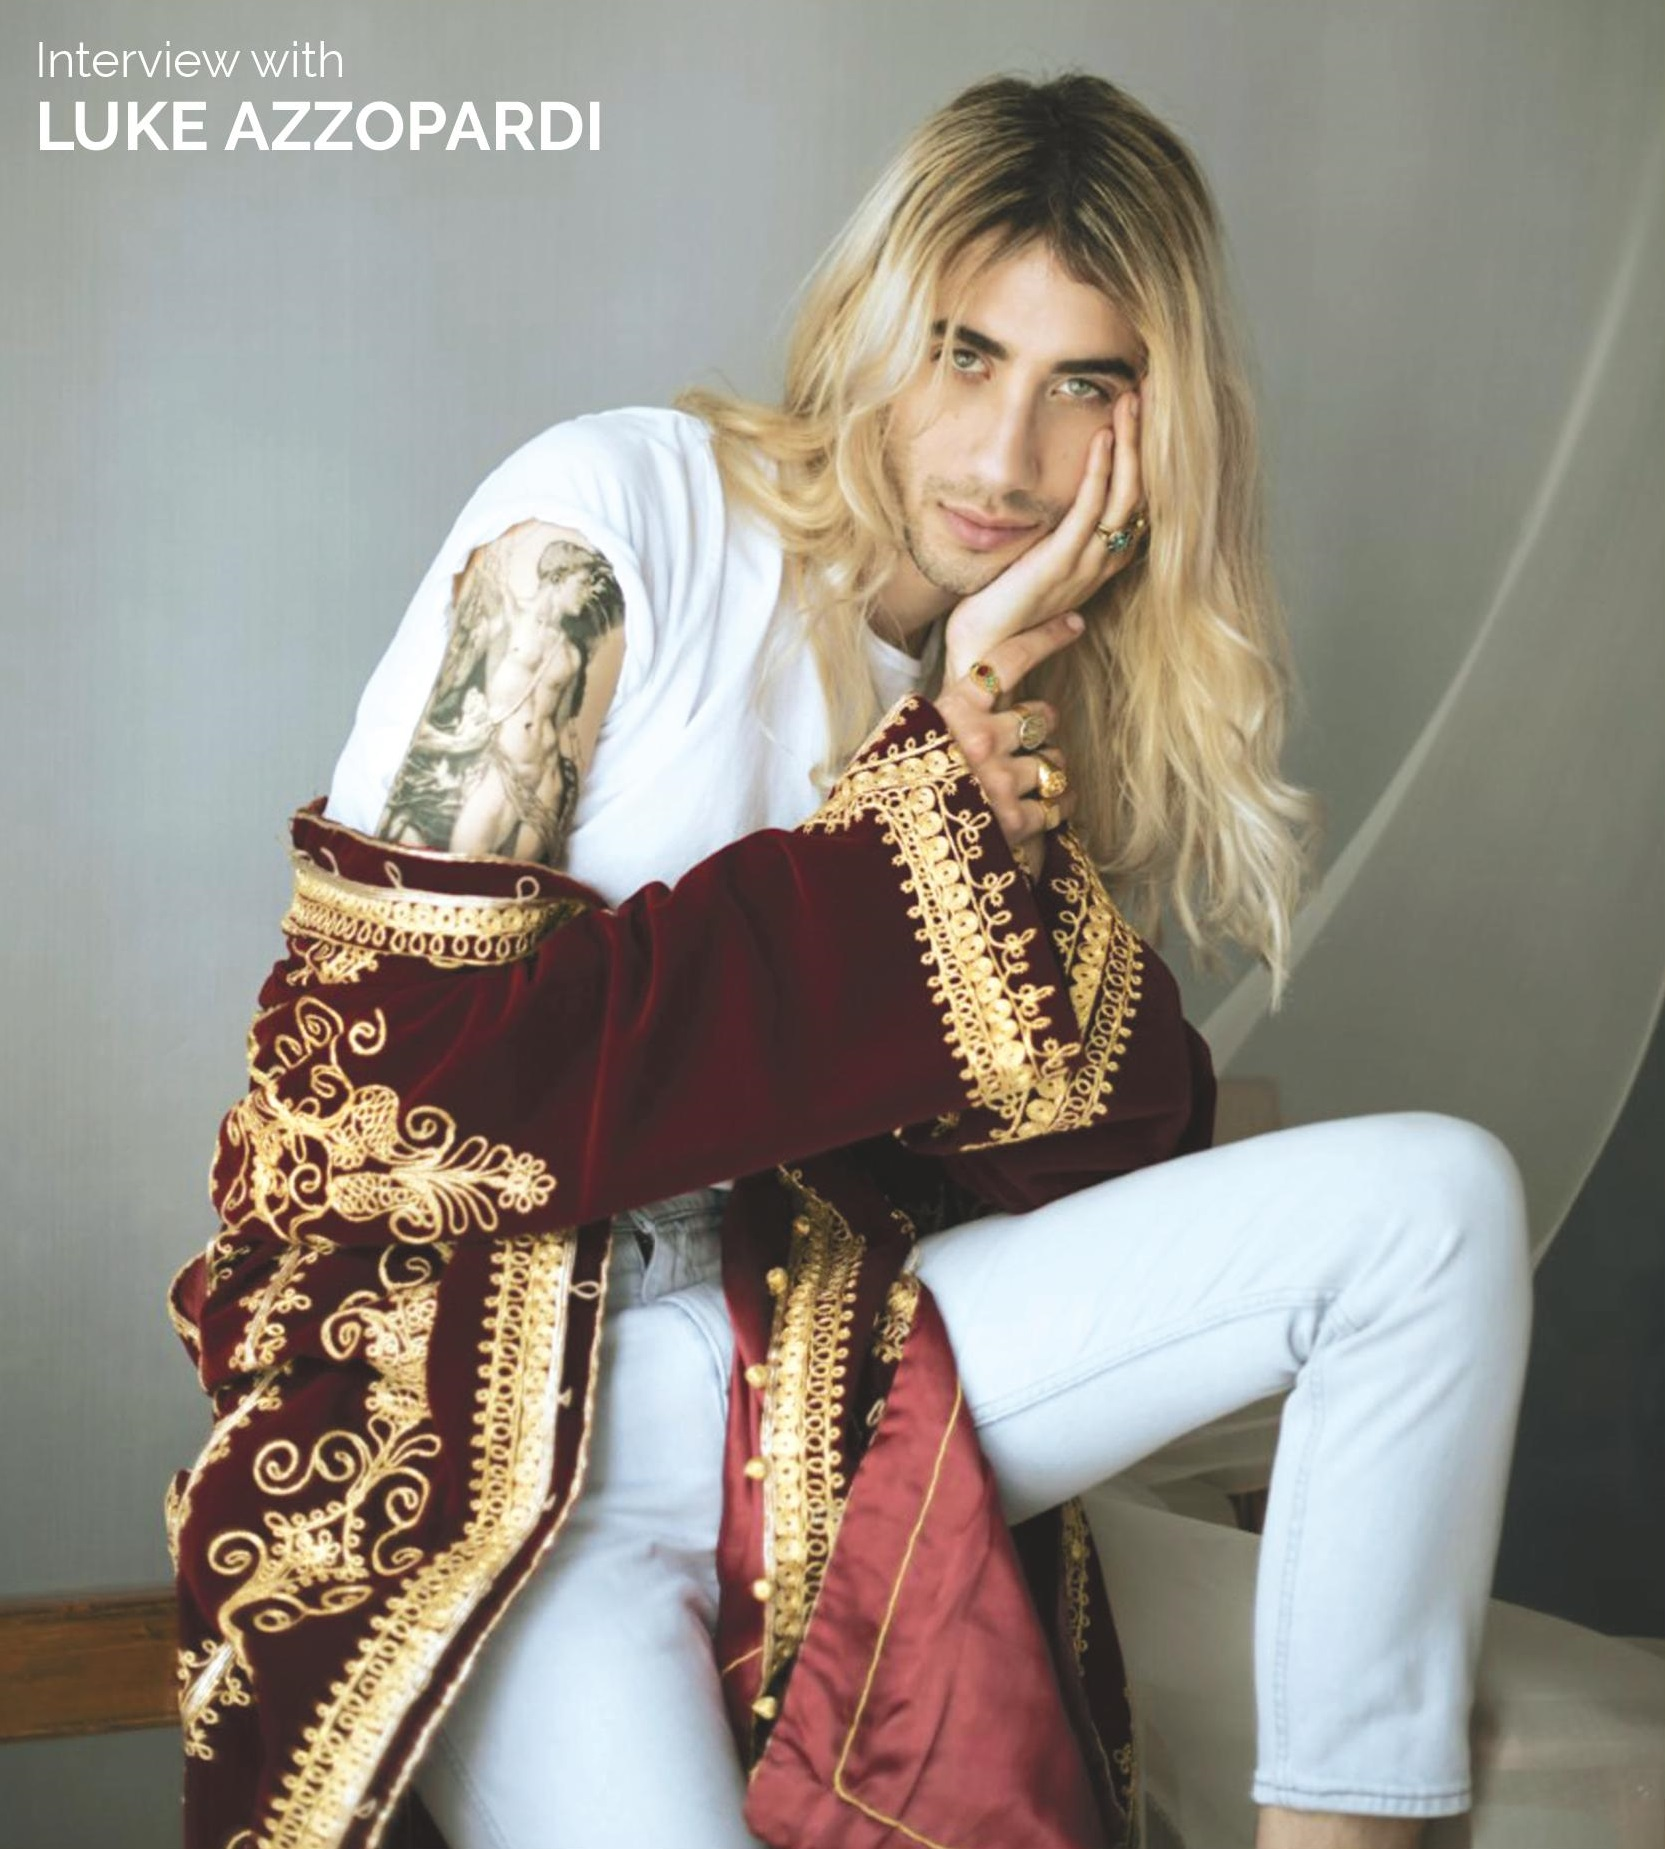 Luke Azzopardi interview fashion